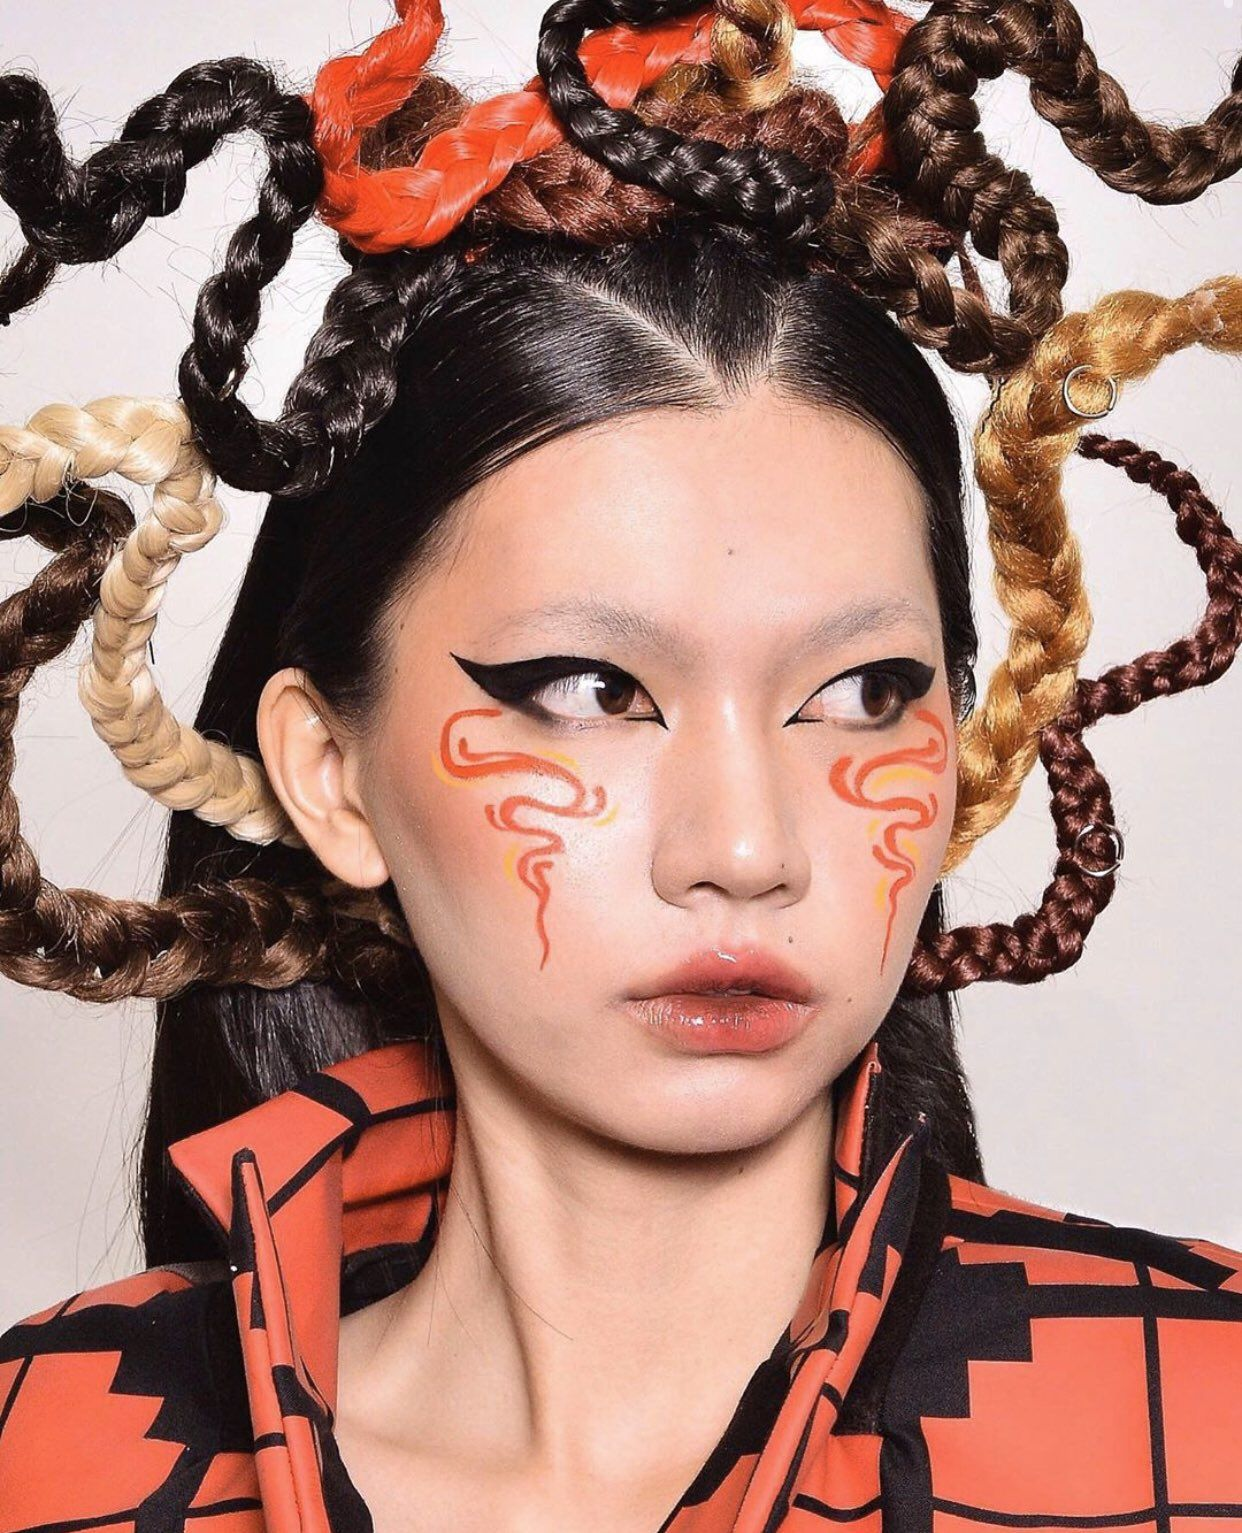 Pin by Tang on Makeup & Fashion in 2020 Halloween face